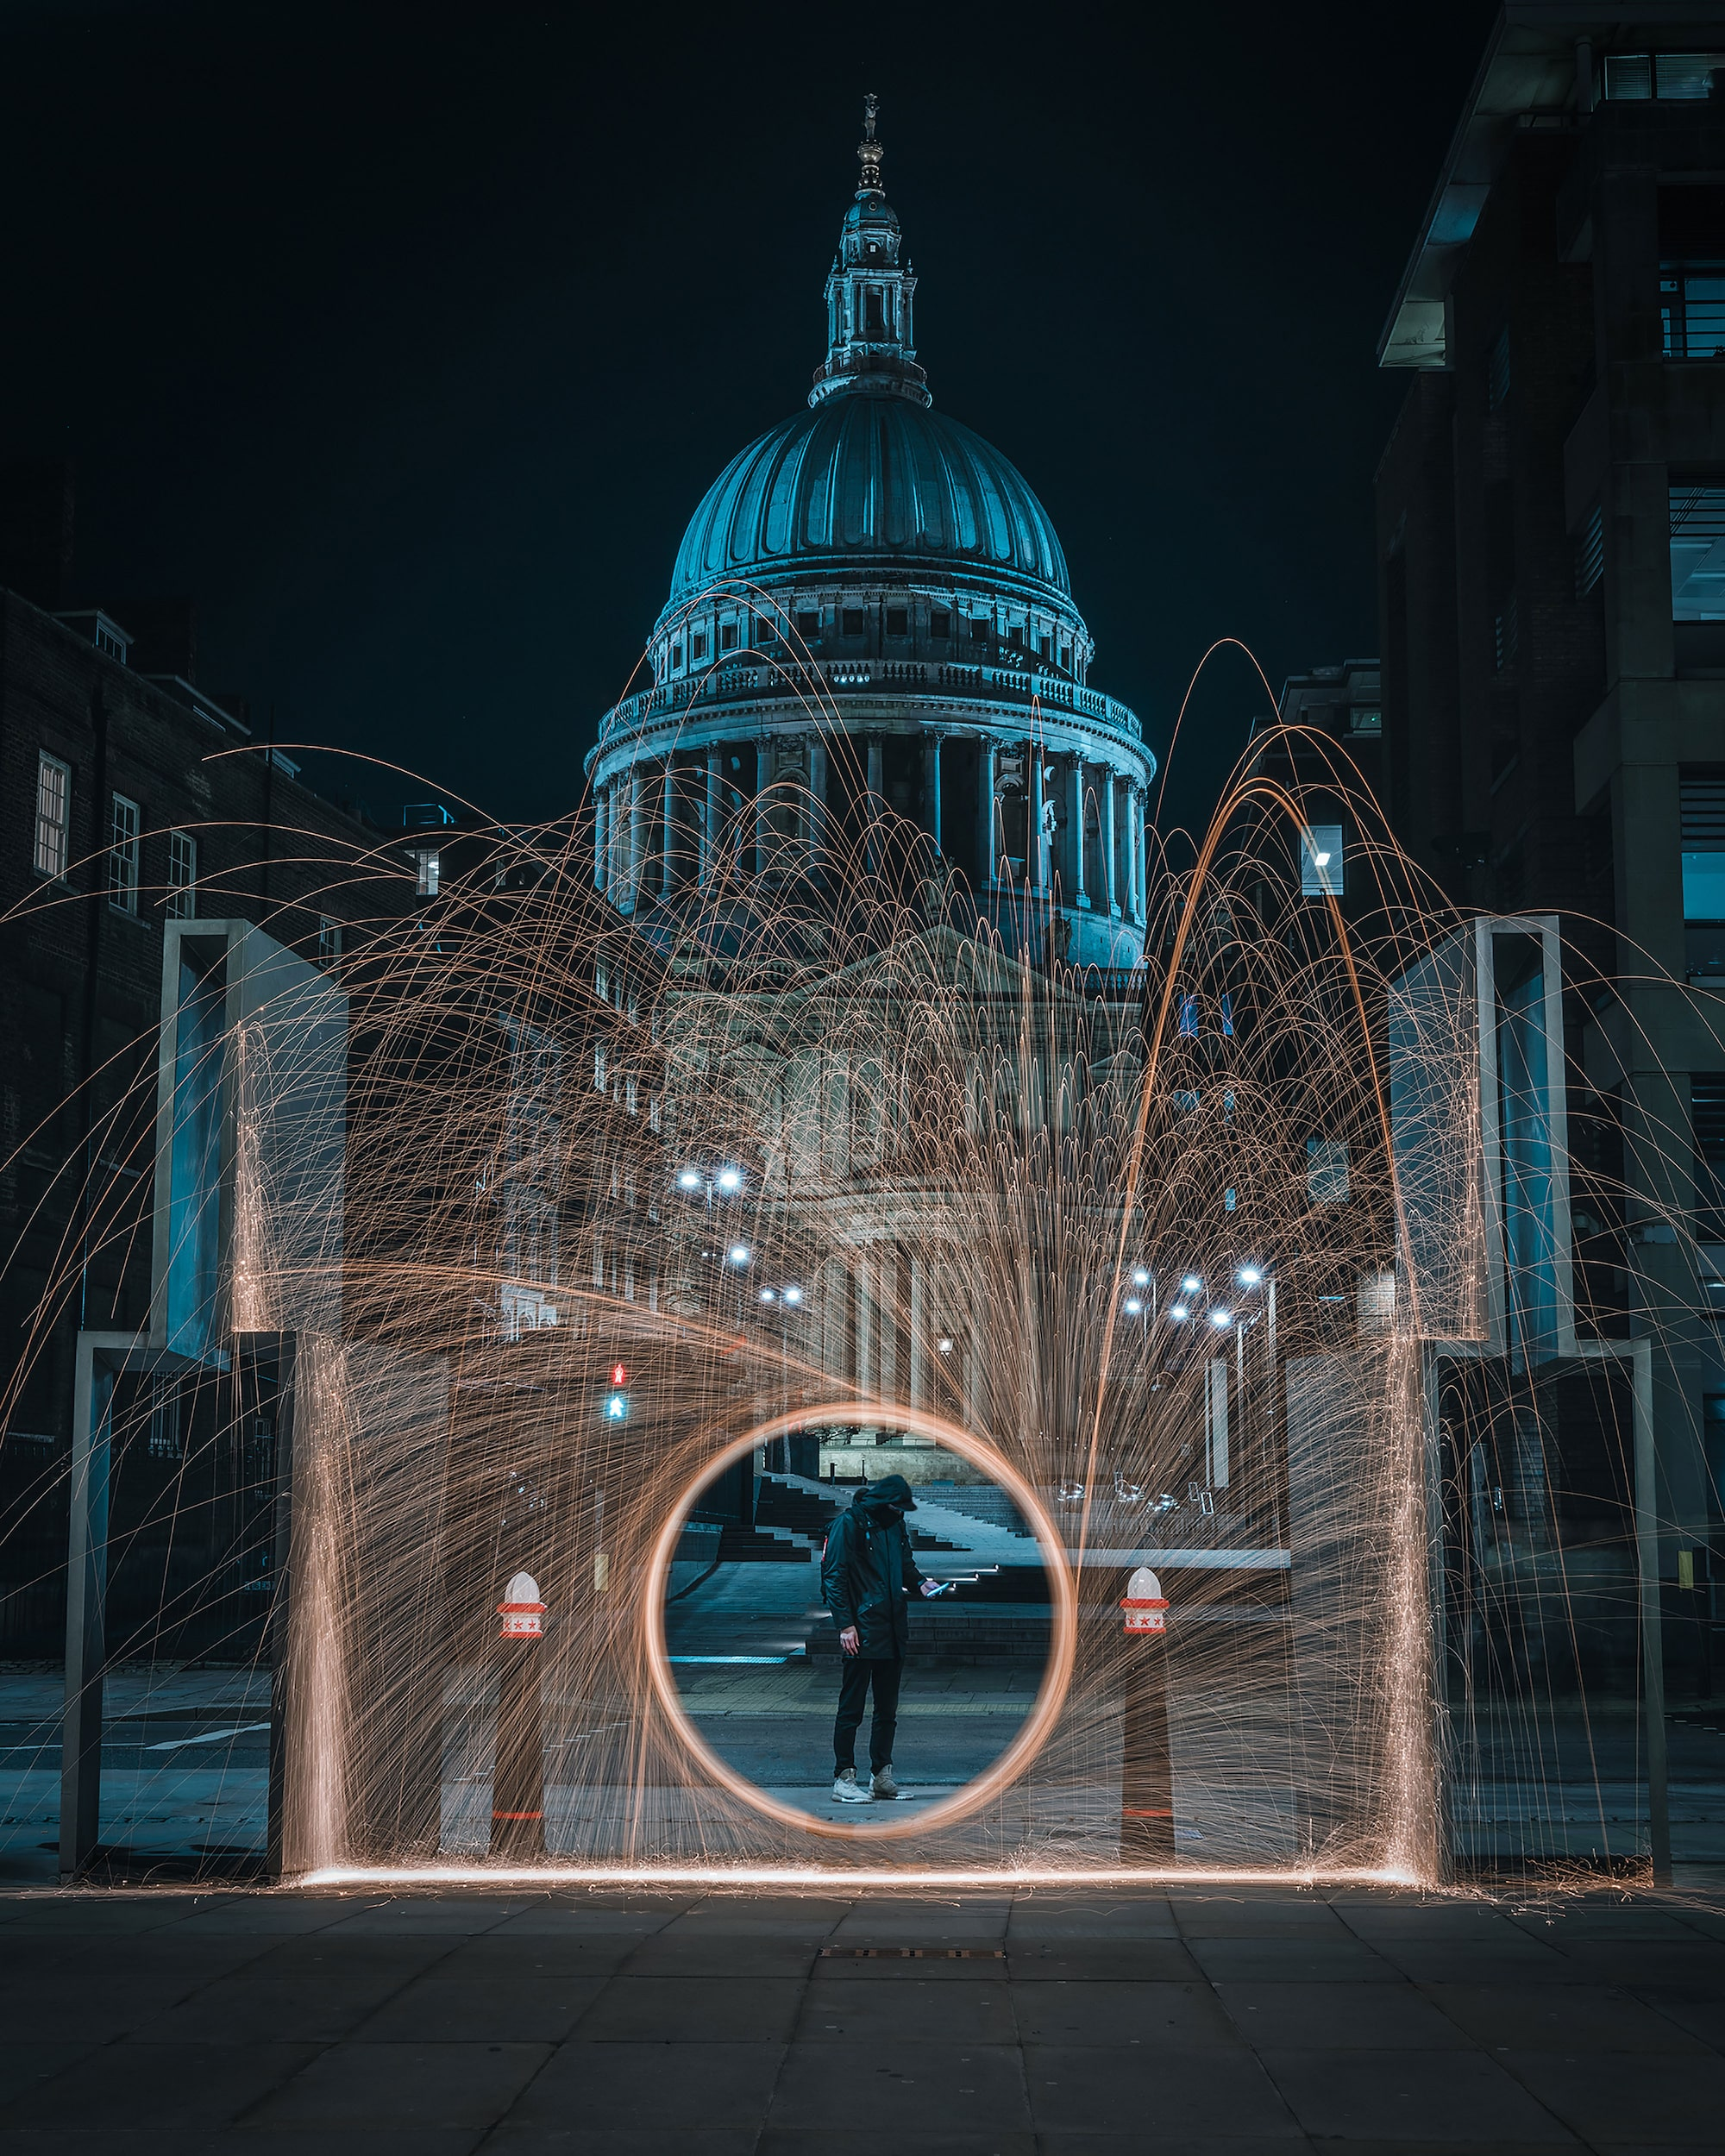 Slow shutter shot in front of London building